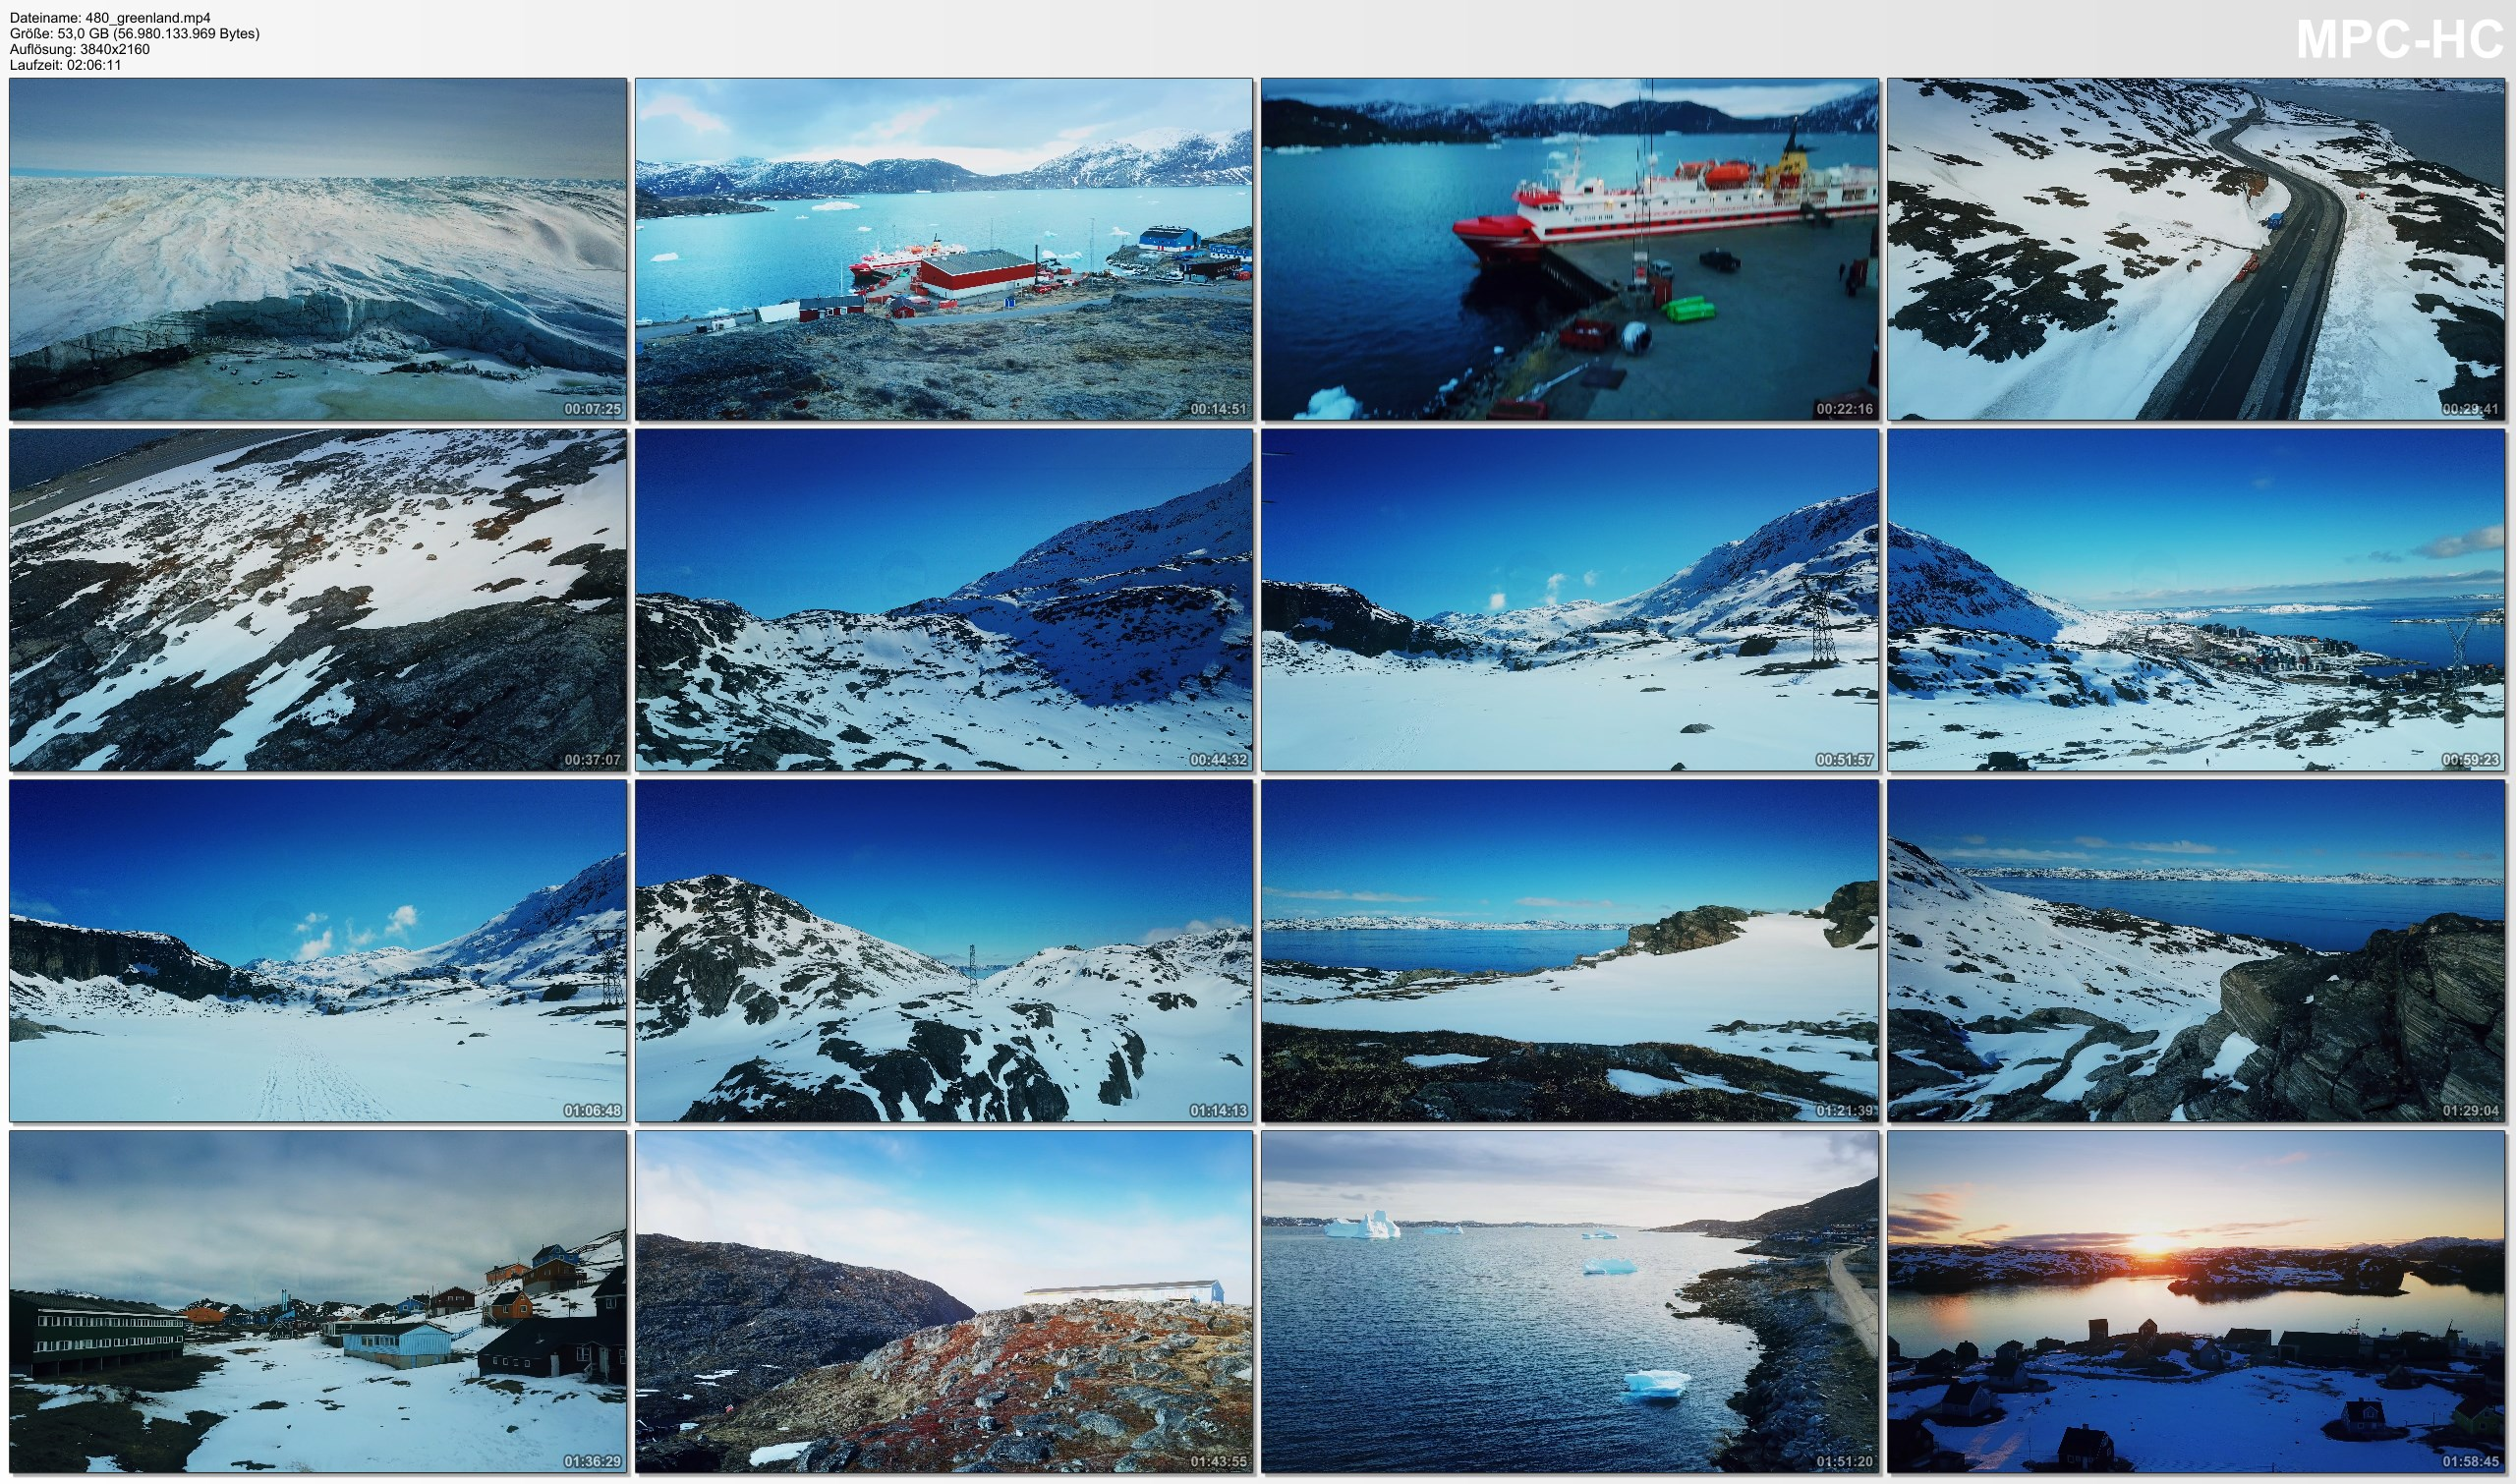 Drone Pictures from Video 【4K】Drone RAW Footage | This is GREENLAND 2020 | Nuuk | Qaqortoq and More | UltraHD Stock Video